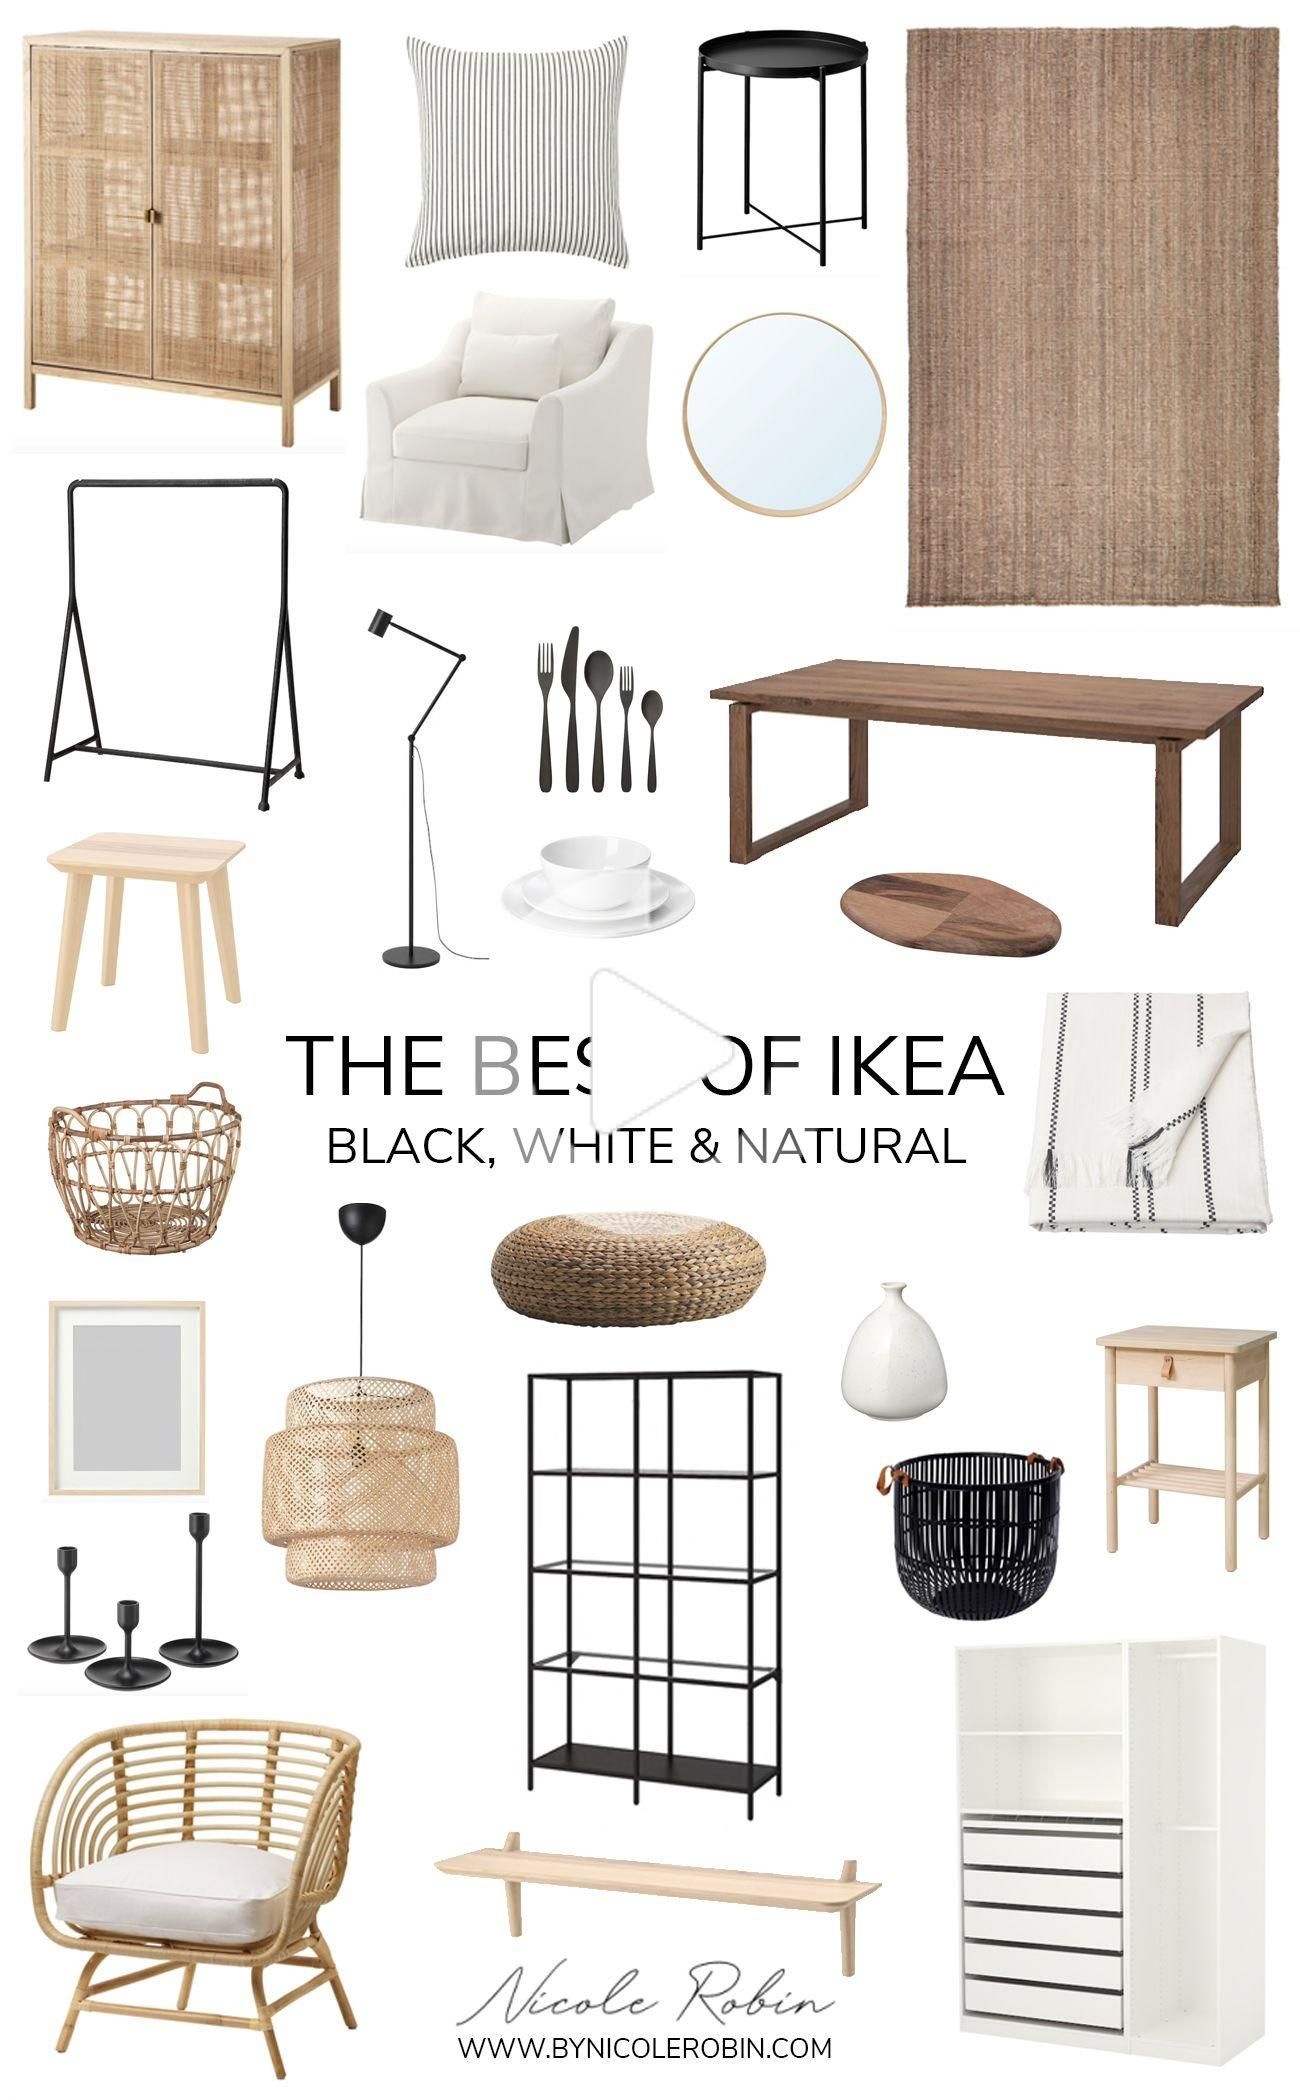 The Best of Ikea Black White & Natural Pieces That Look